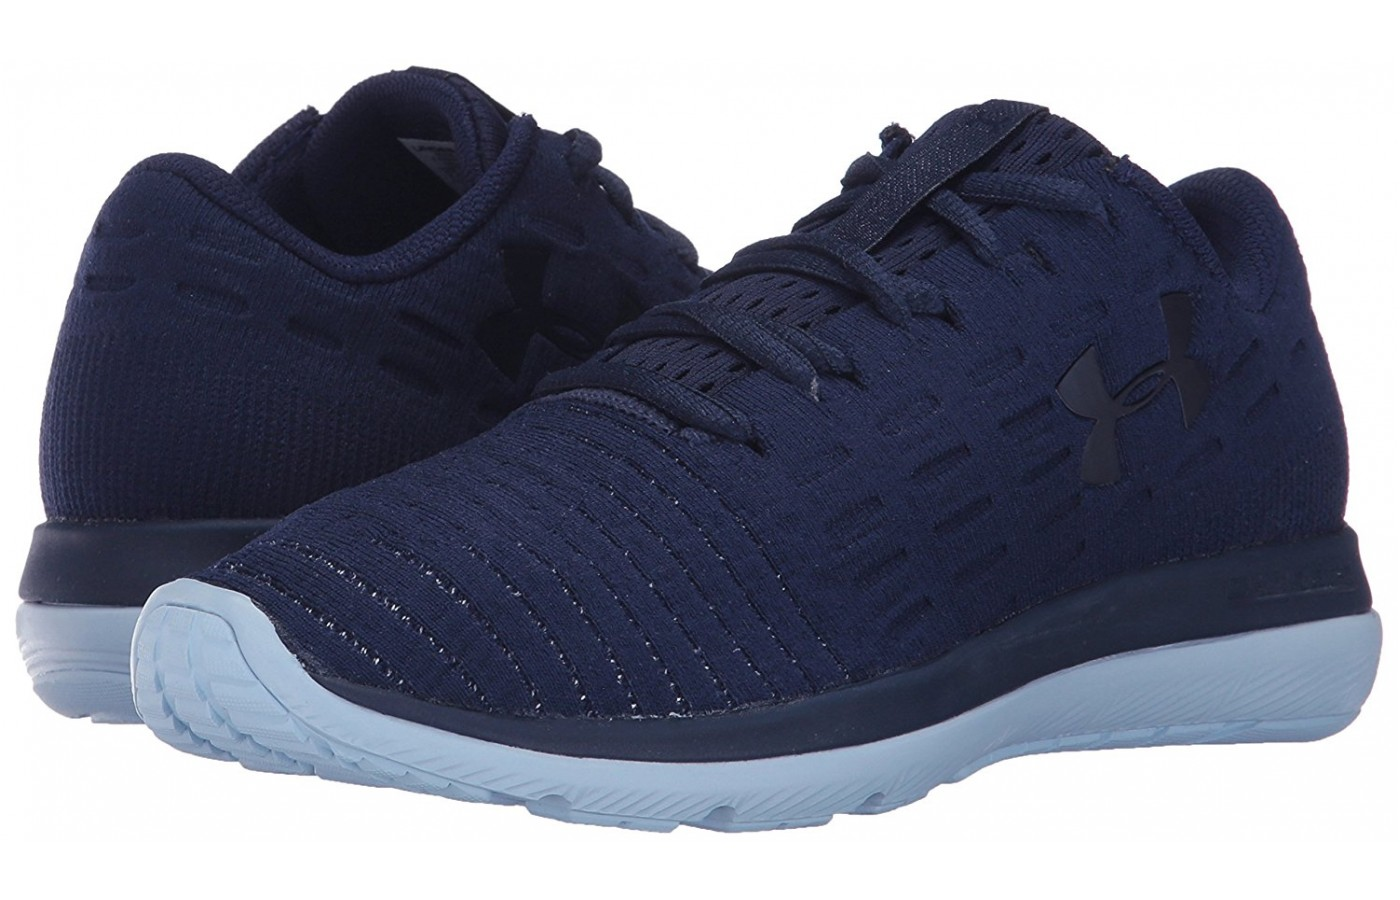 Under Armour Threadborne Slingflex pair